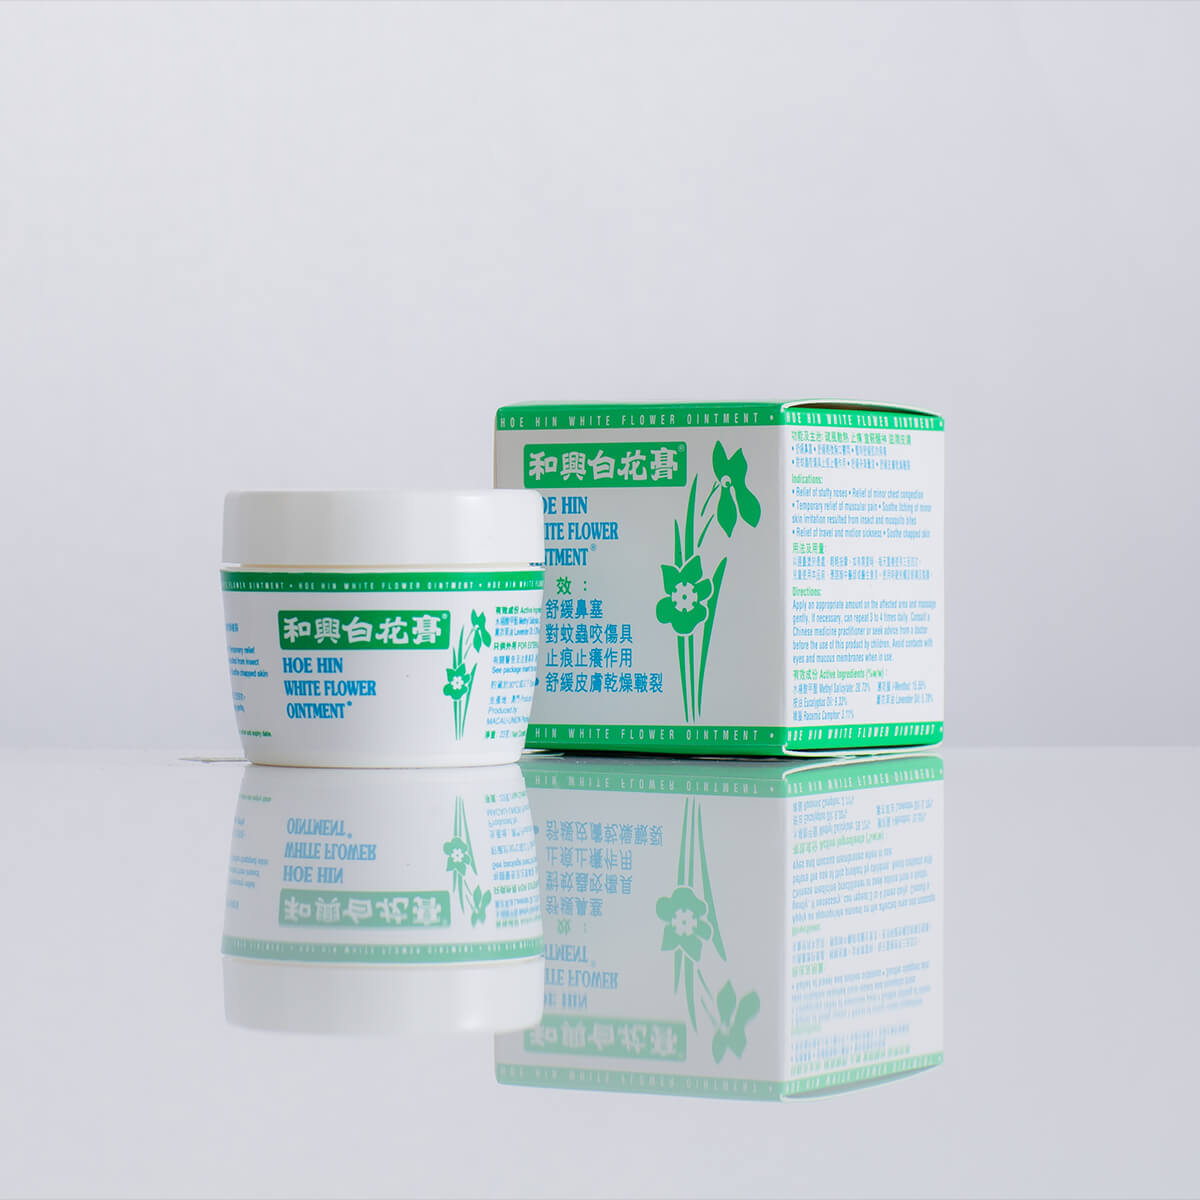 Hoe Hin White Flower Ointment (23g)